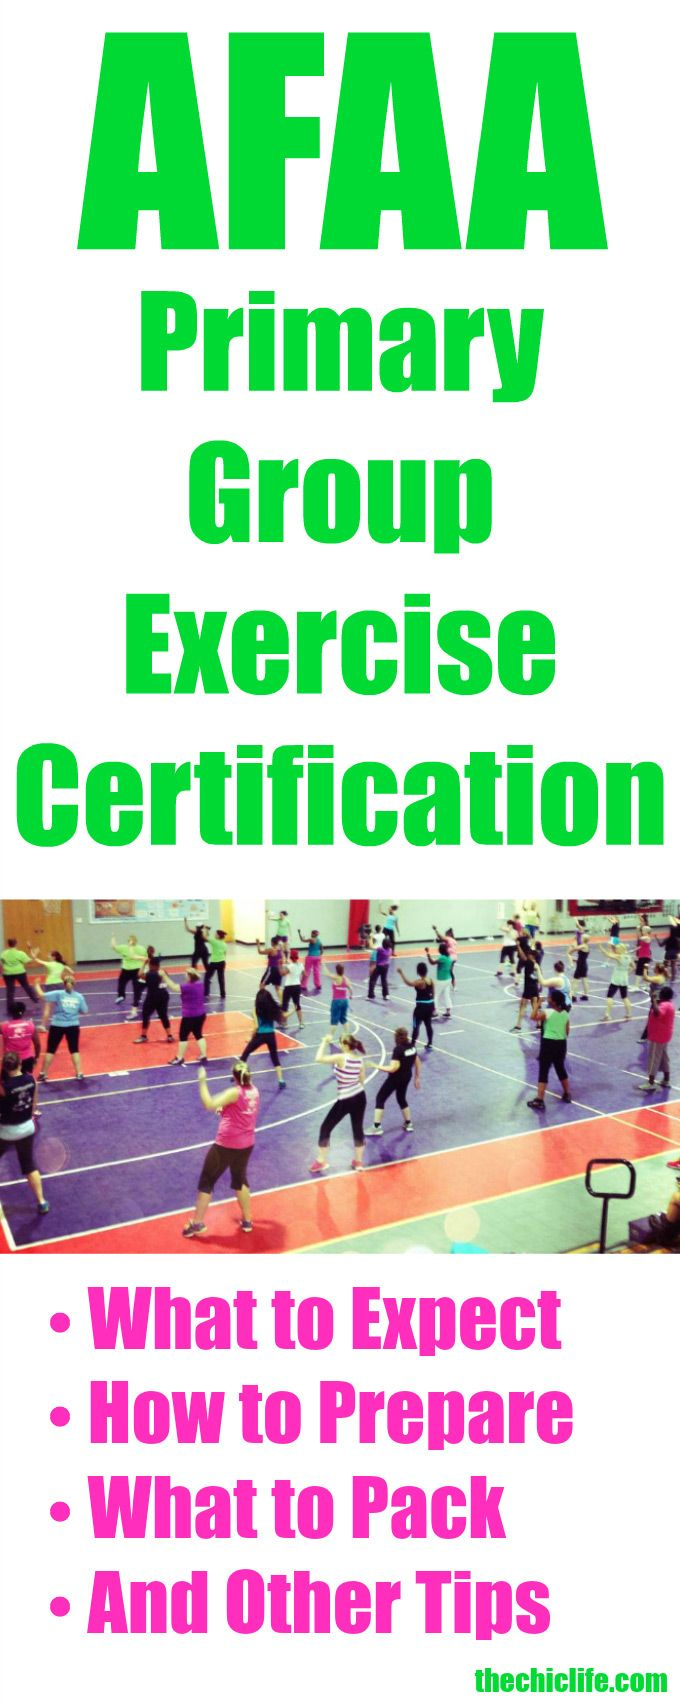 AFAA Primary Group Exercise Certification Tips